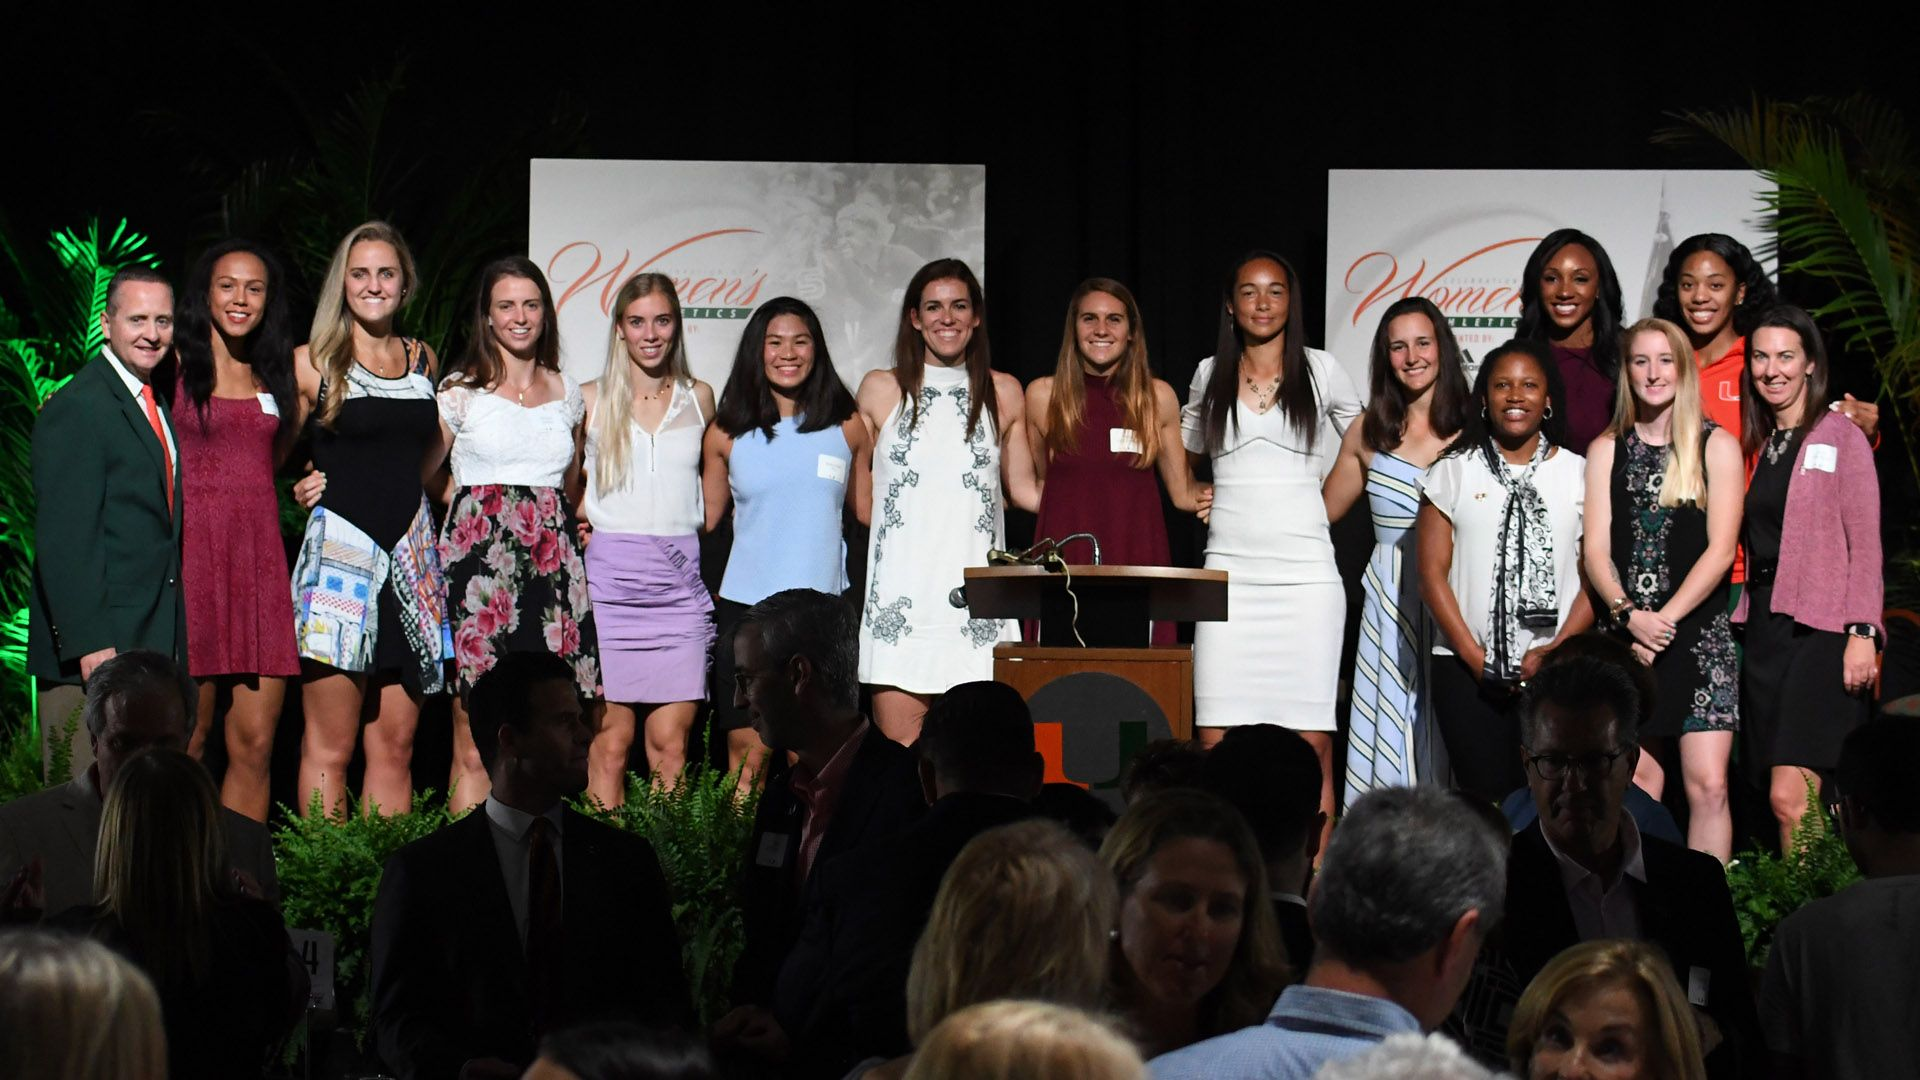 Fifth Annual Celebration of Women's Athletics presented by adidas